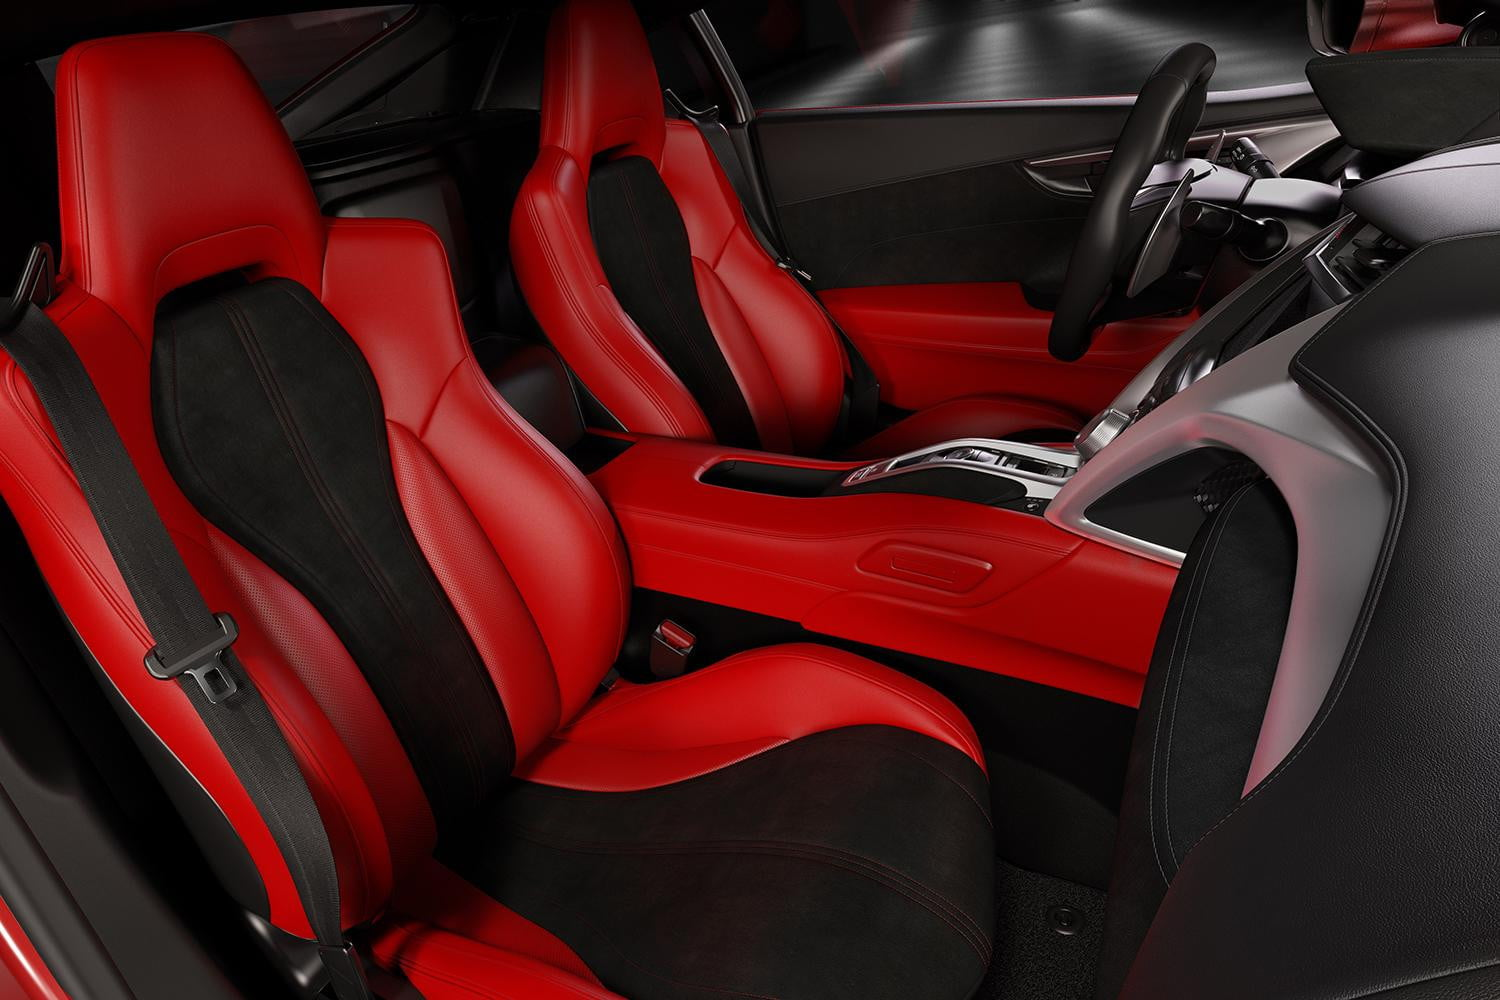 acura nsx 2014 interior. 2016 acura nsx the ford interior is all business it features a squaredoff steering wheel with integrated controls and an impossiblythin center console nsx 2014